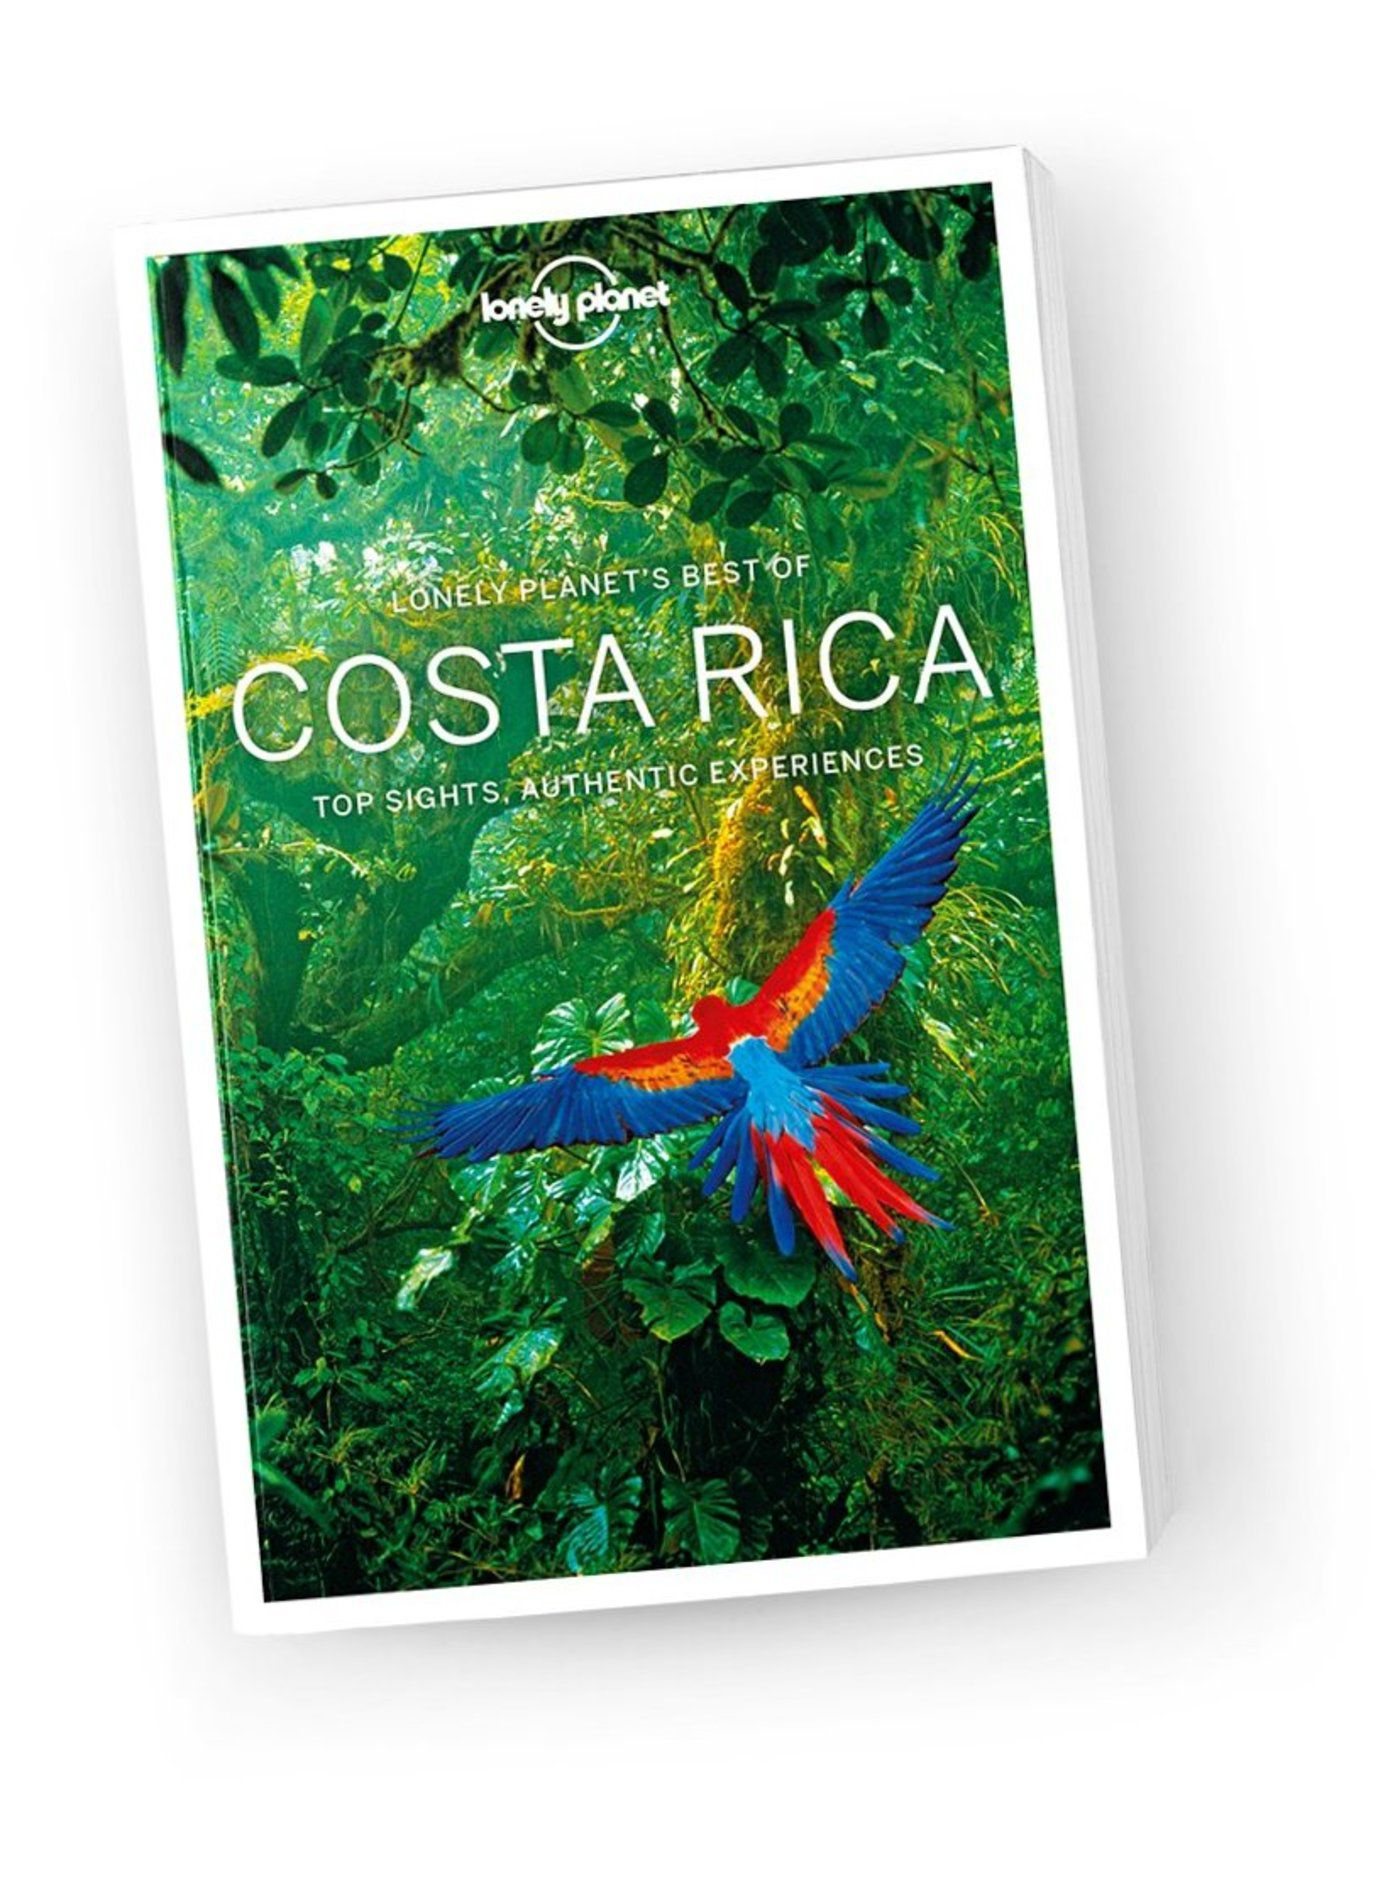 Best of Costa Rica travel guide